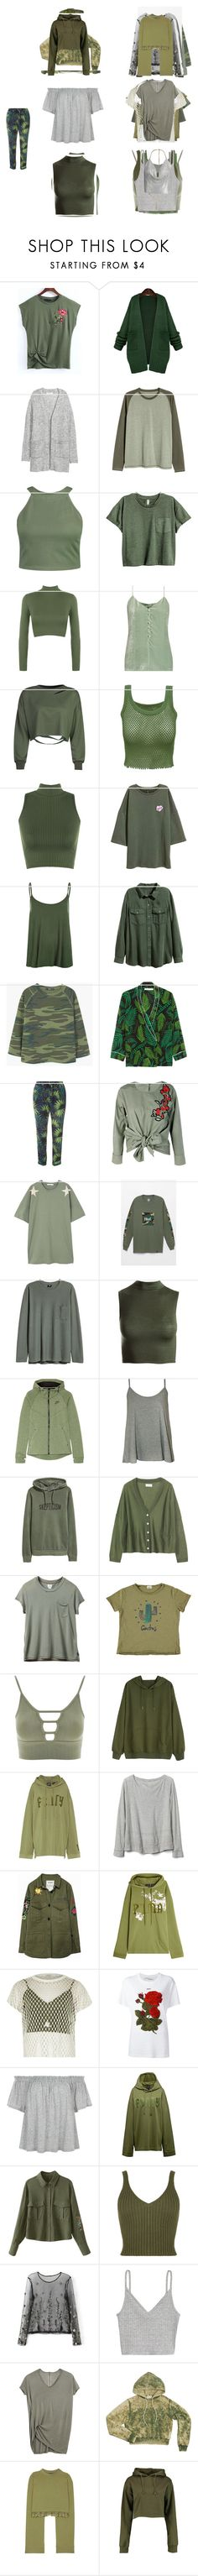 """Untitled #32"" by harthkai on Polyvore featuring WithChic, Kofta, Boohoo, WearAll, Hillier Bartley, MANGO, RIXO London, Dorothy Perkins, PacSun and Sans Souci"